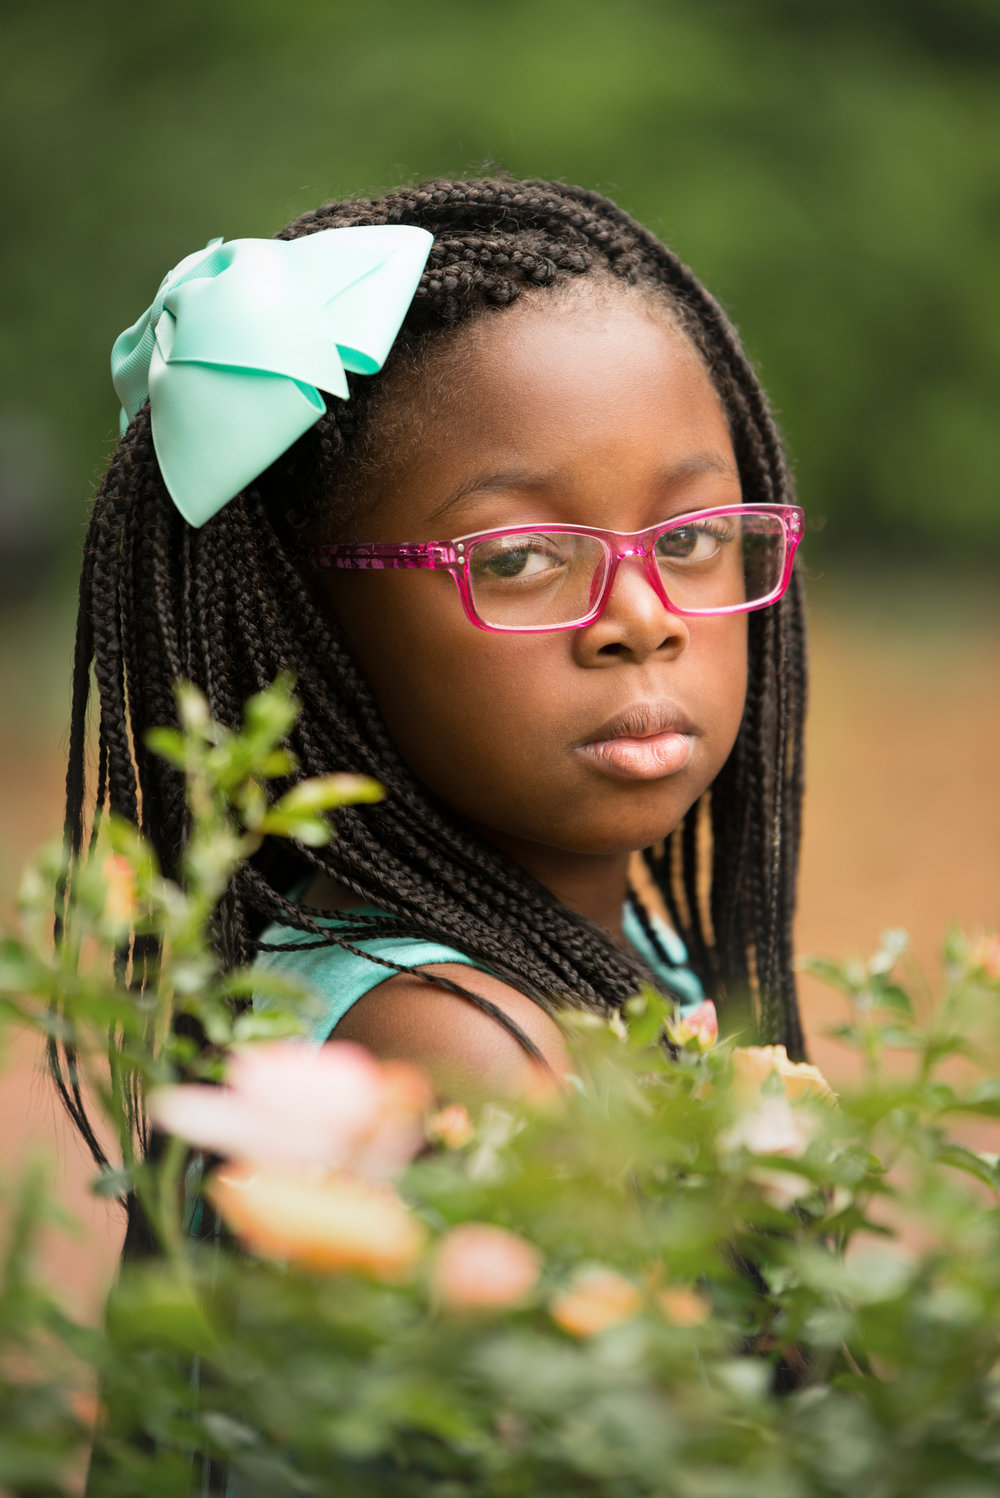 Atlanta Area Child Photographer